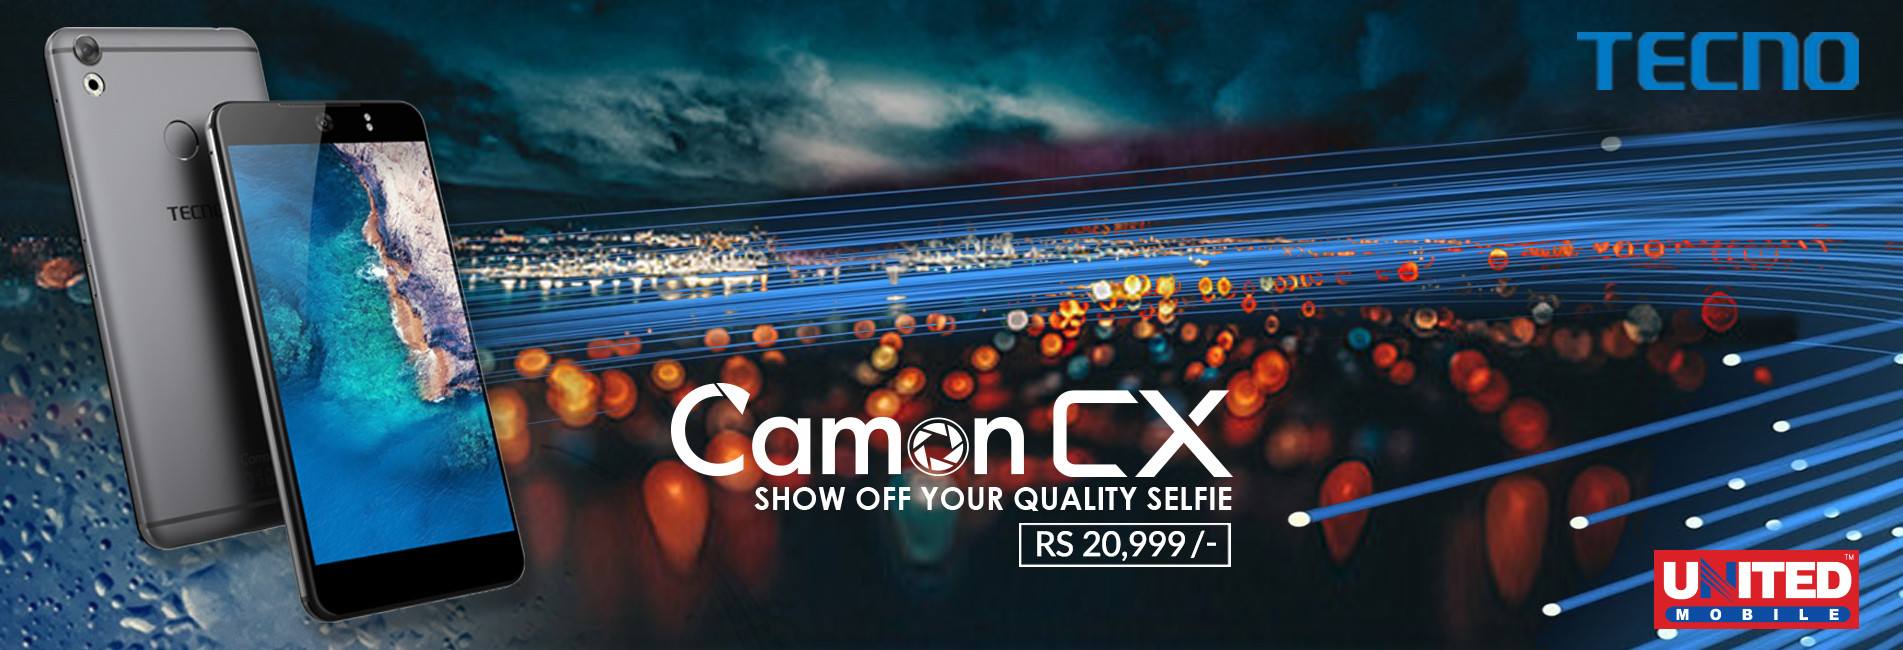 camon-cx-um-website-main-slider-banner